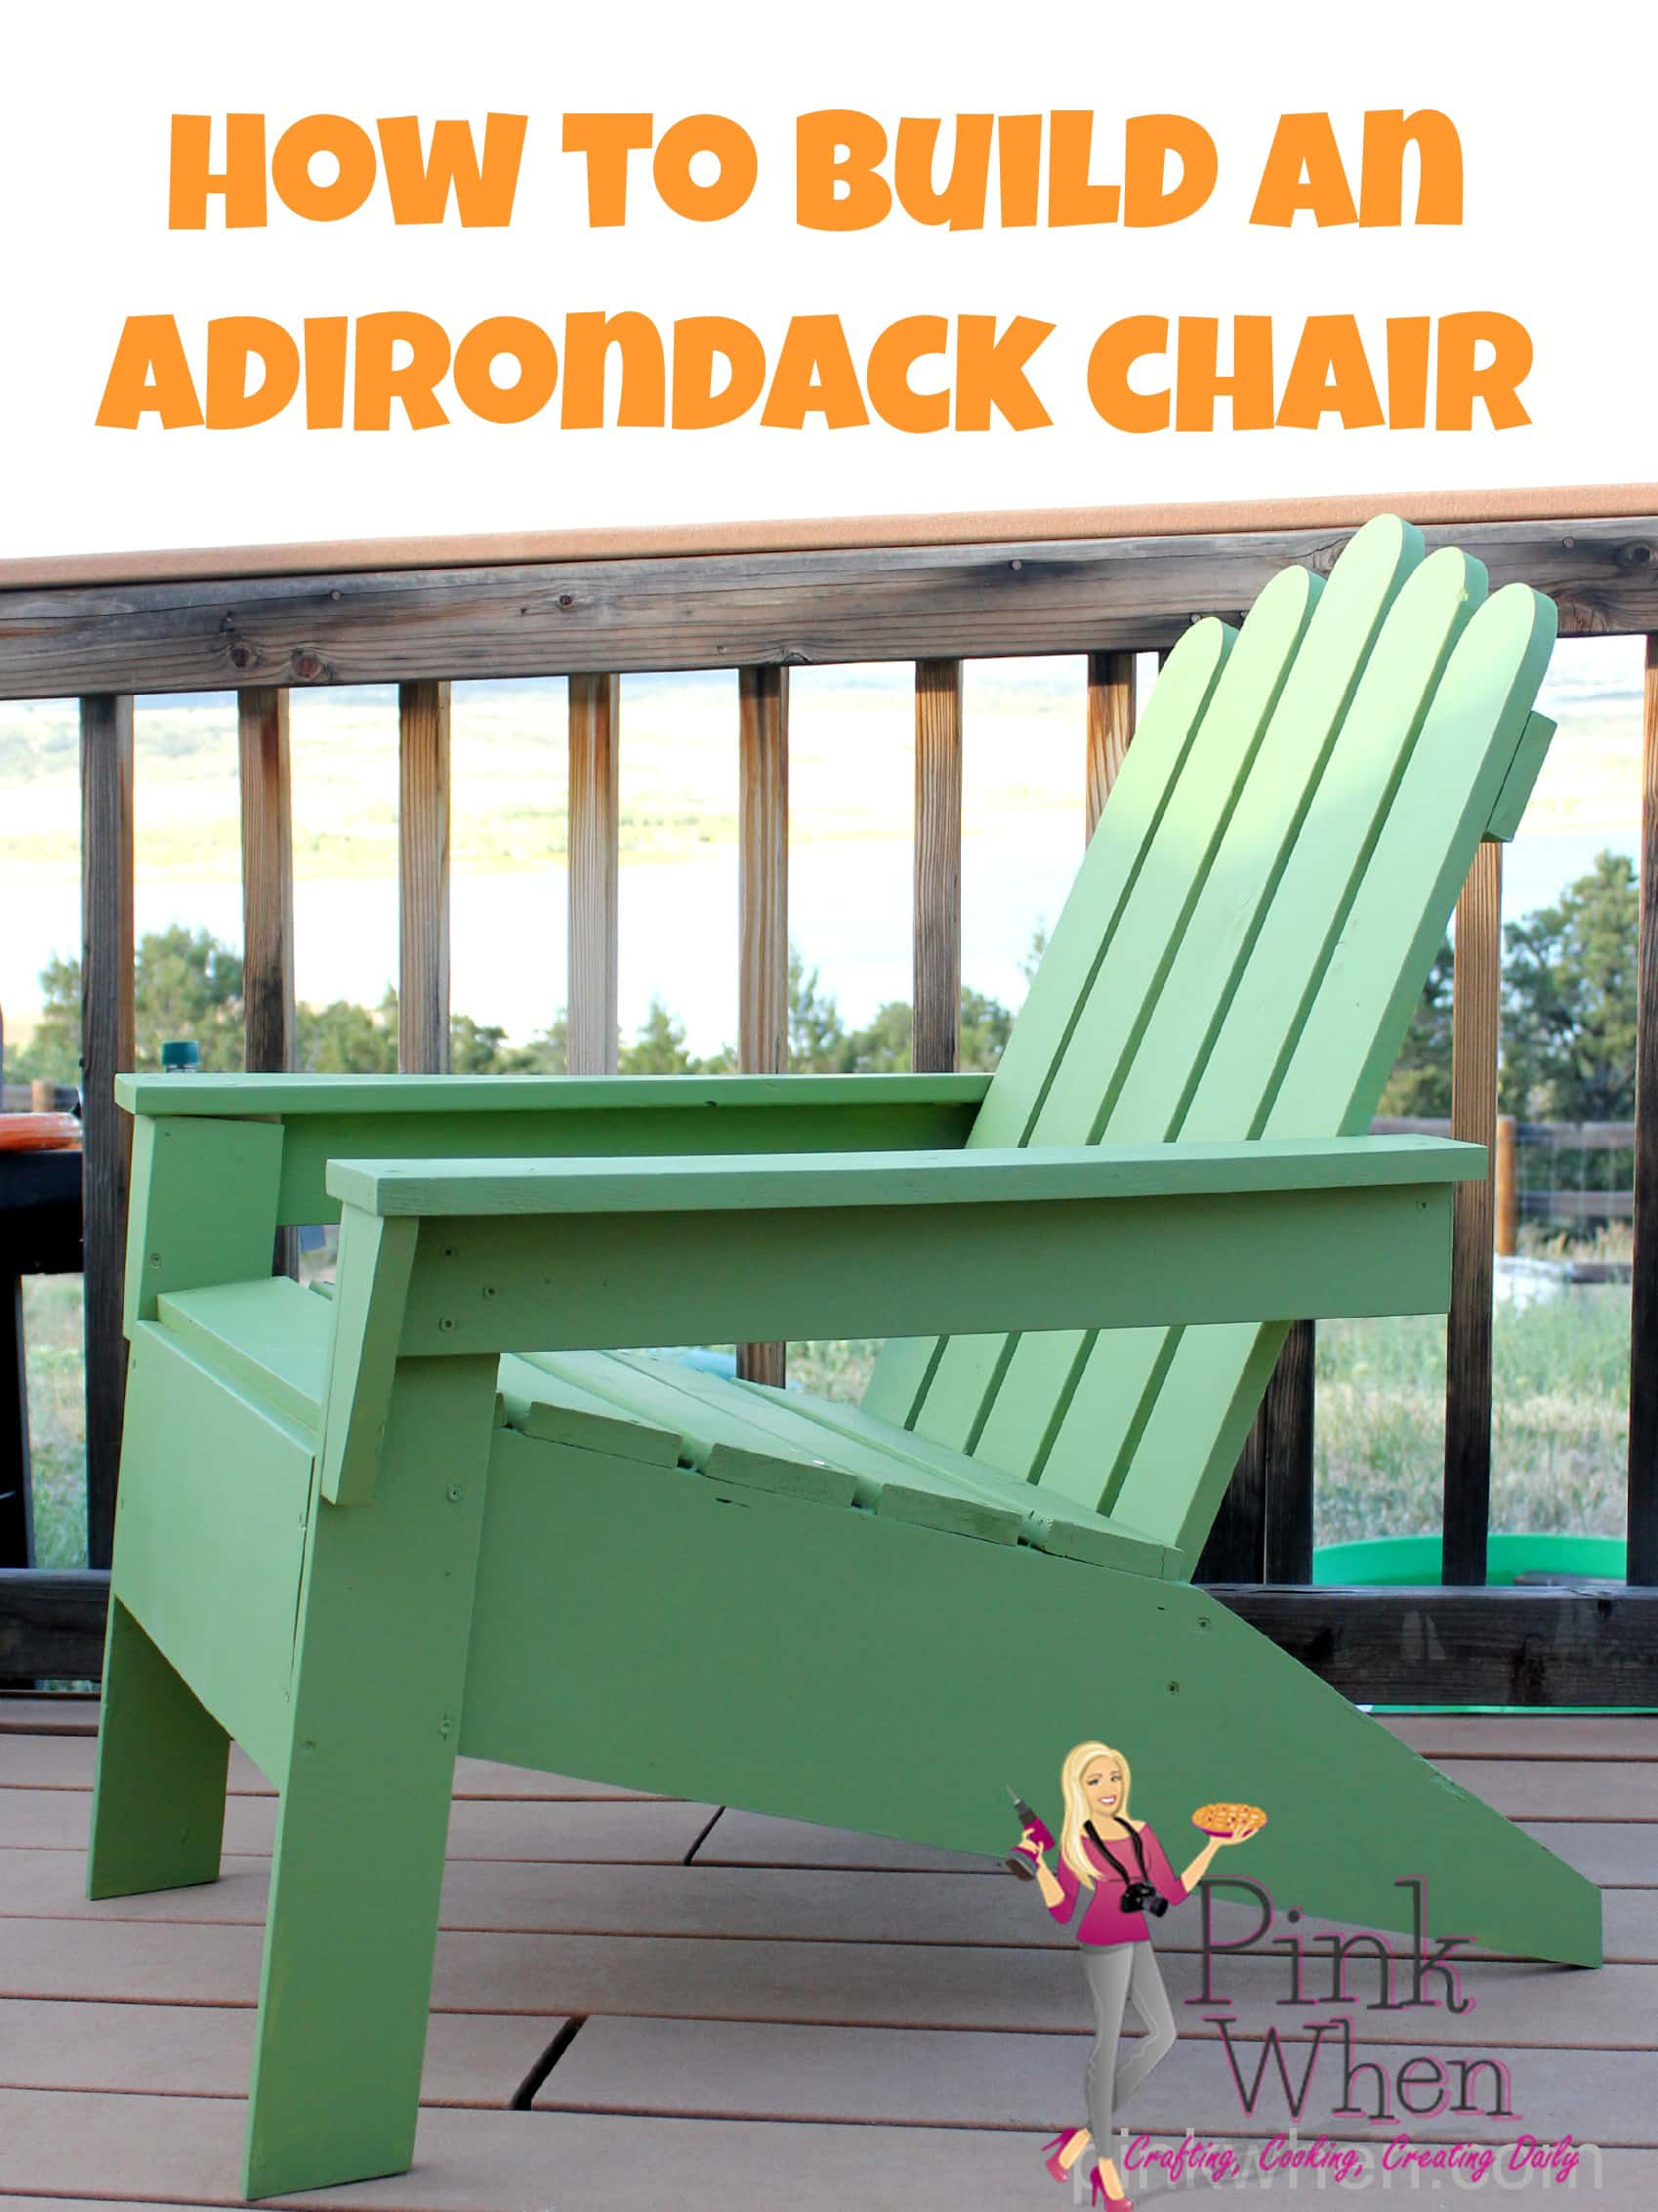 Build your own adirondack chair how much does it cost to for How much do blueprints cost